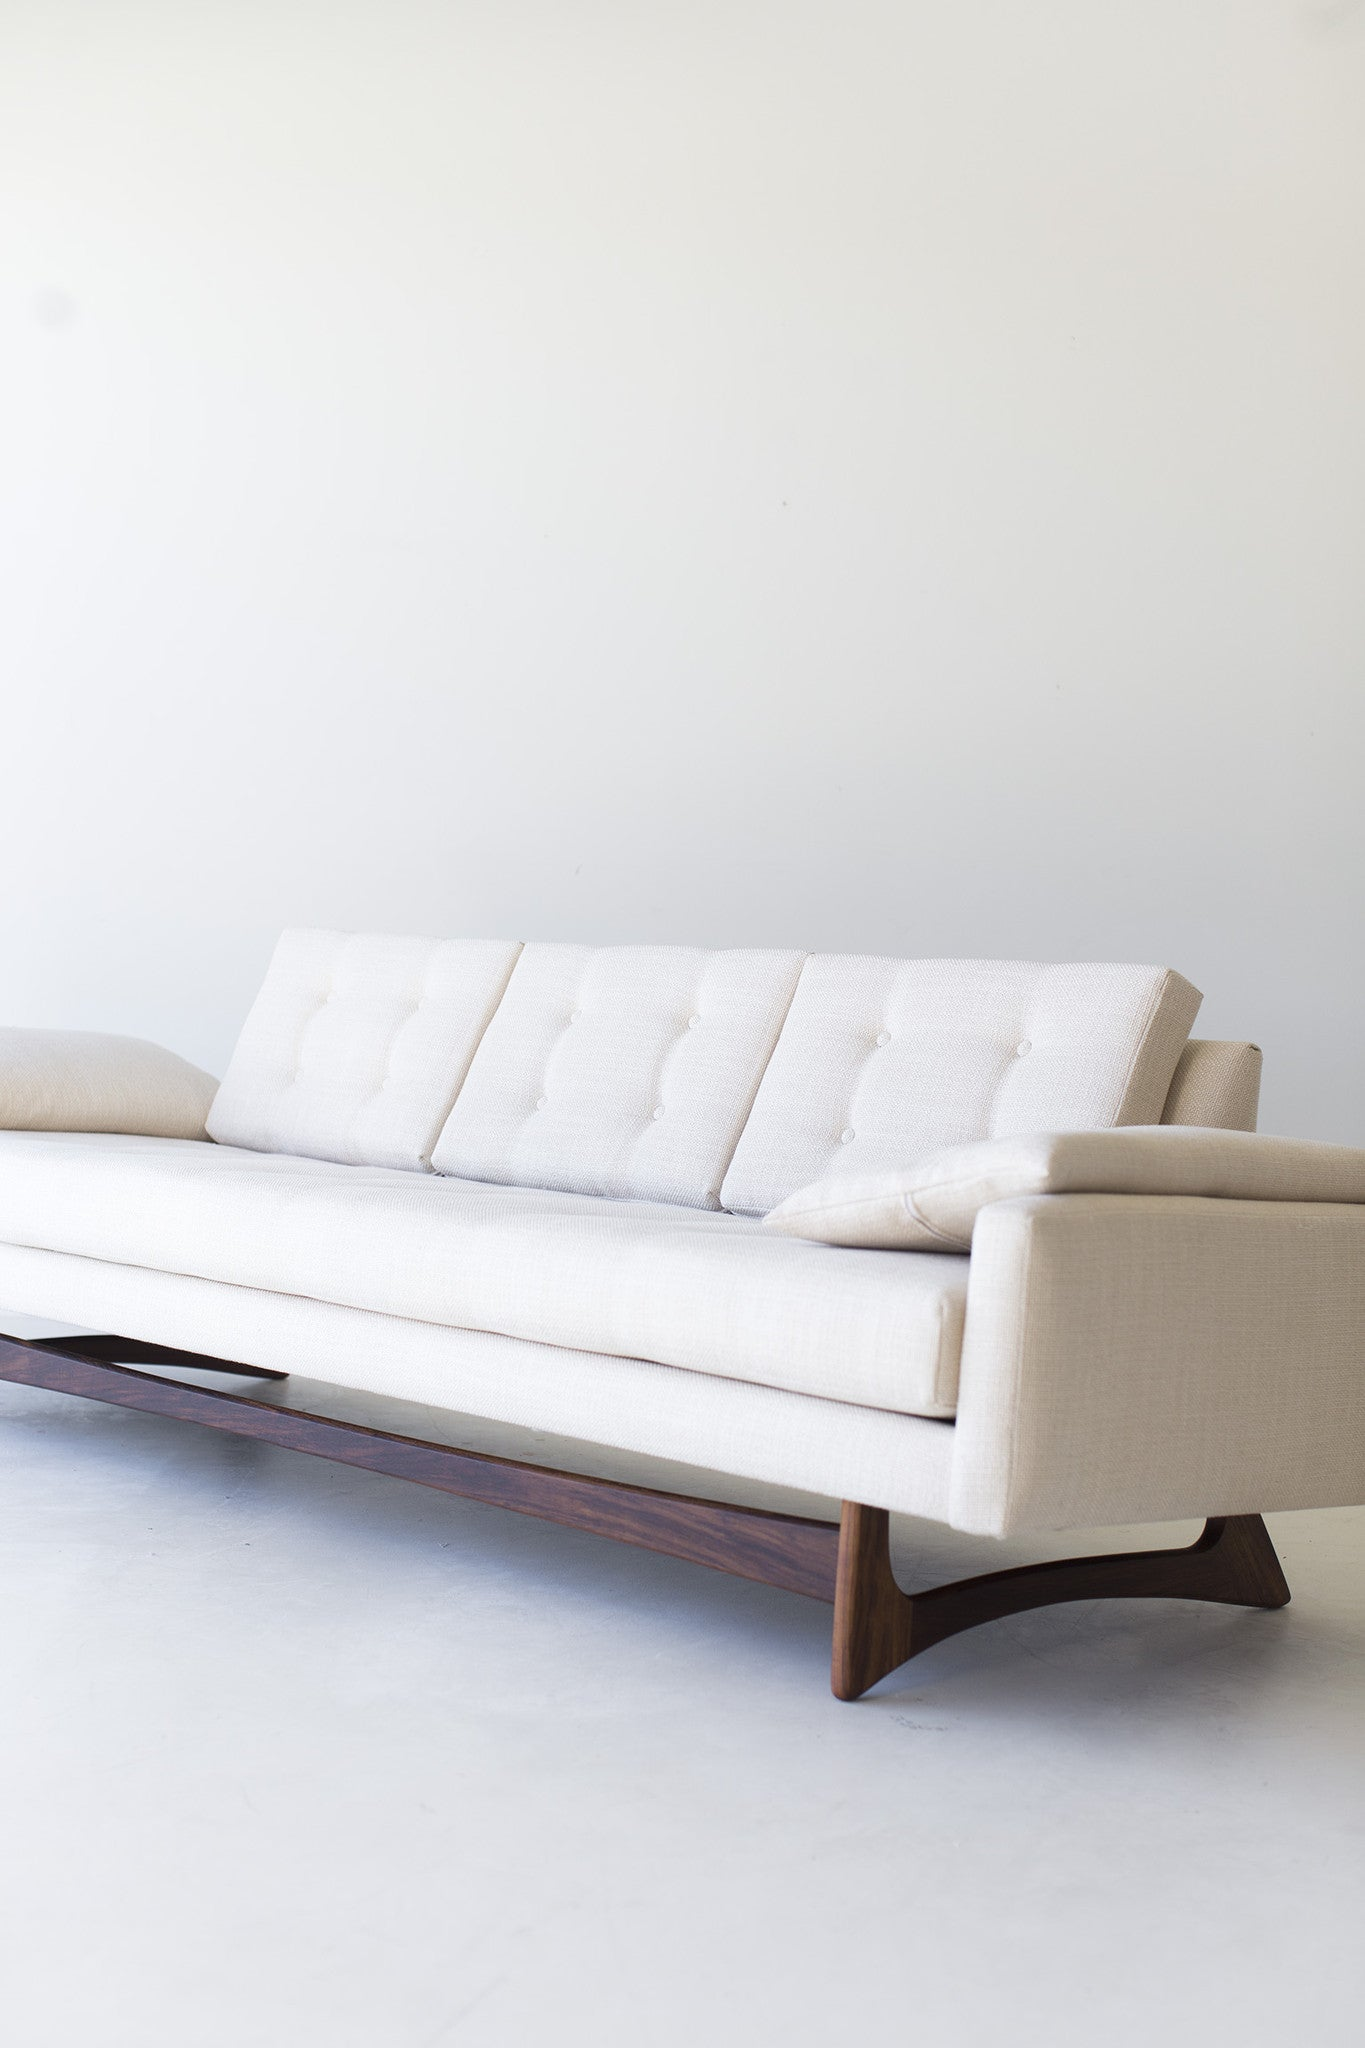 Modern Sofas | Modern Floating Sofa - 1401 - craft ...